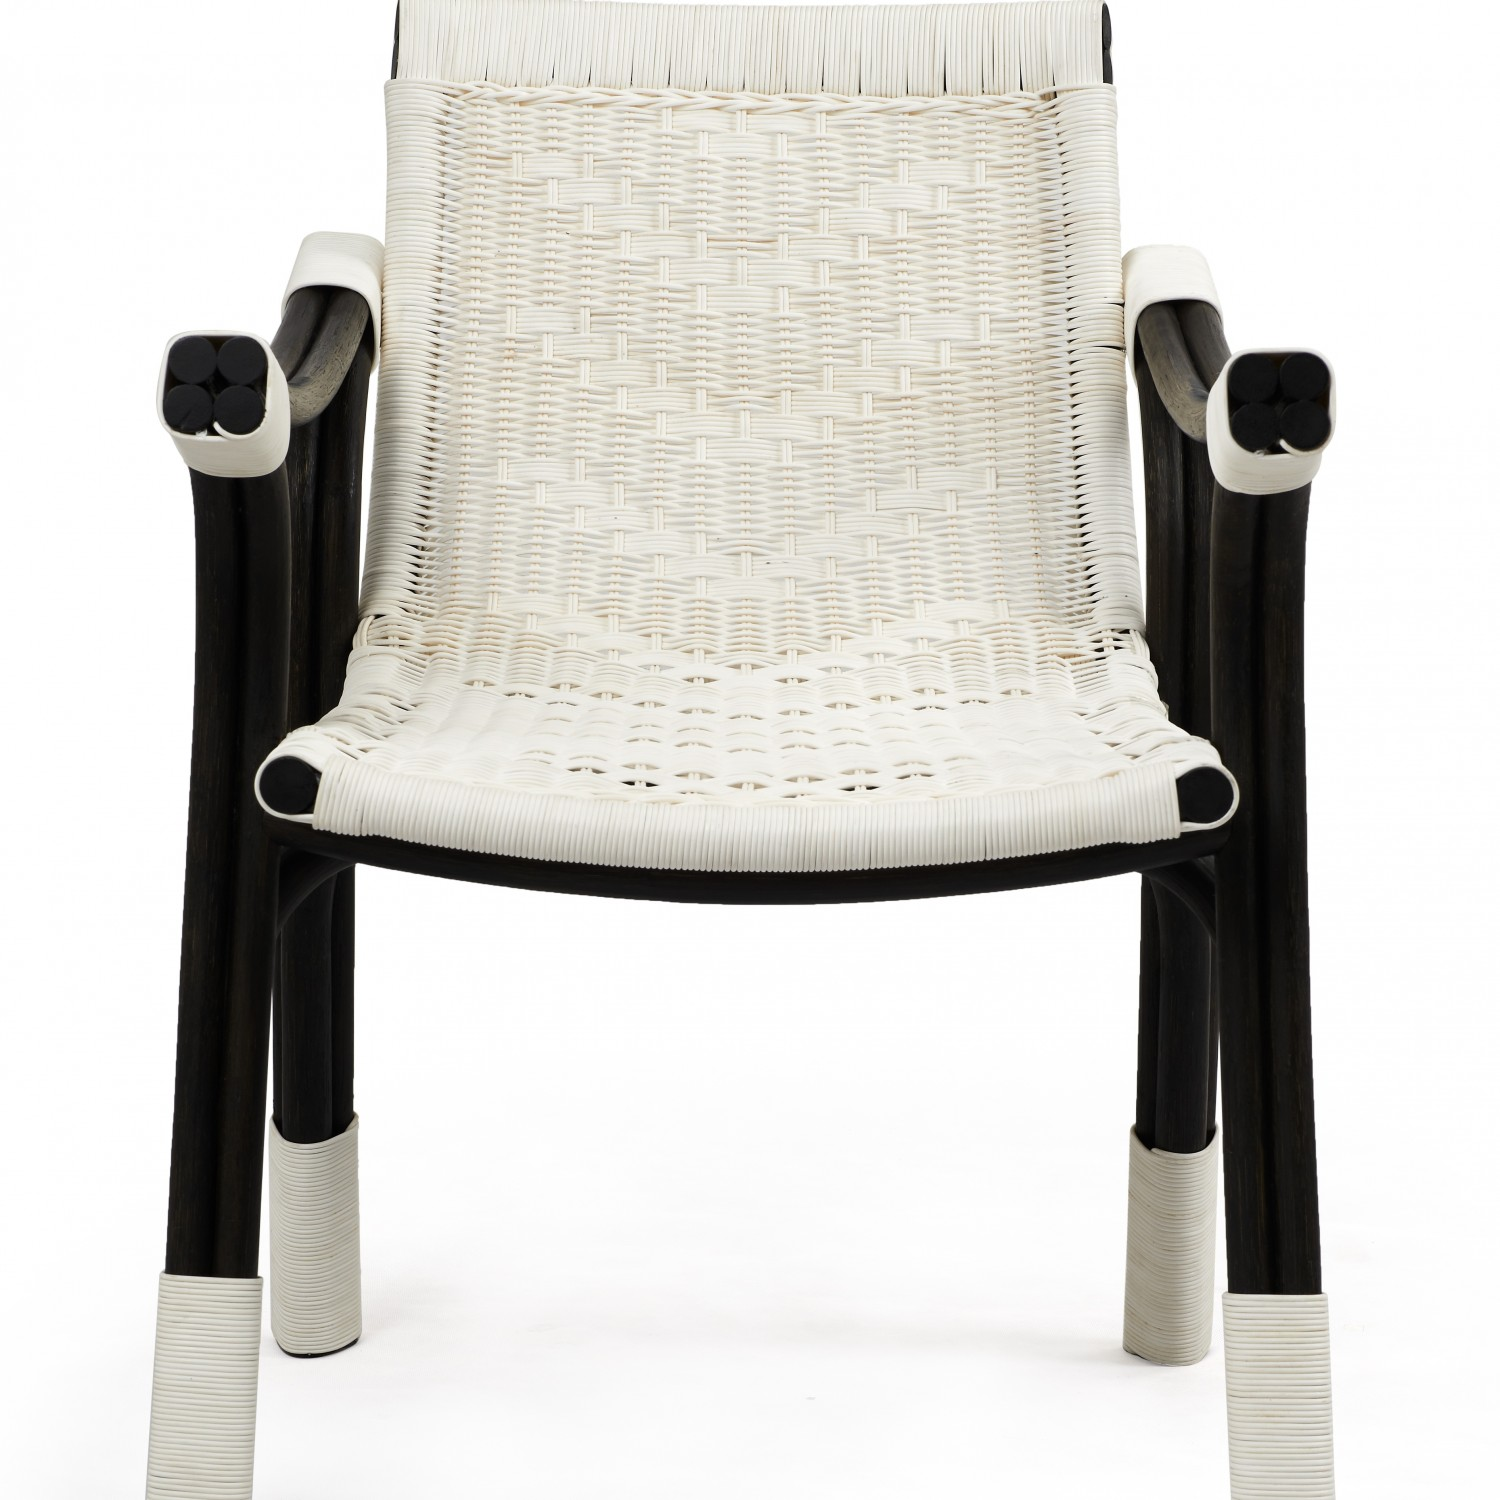 Tori-I Dining Chair2